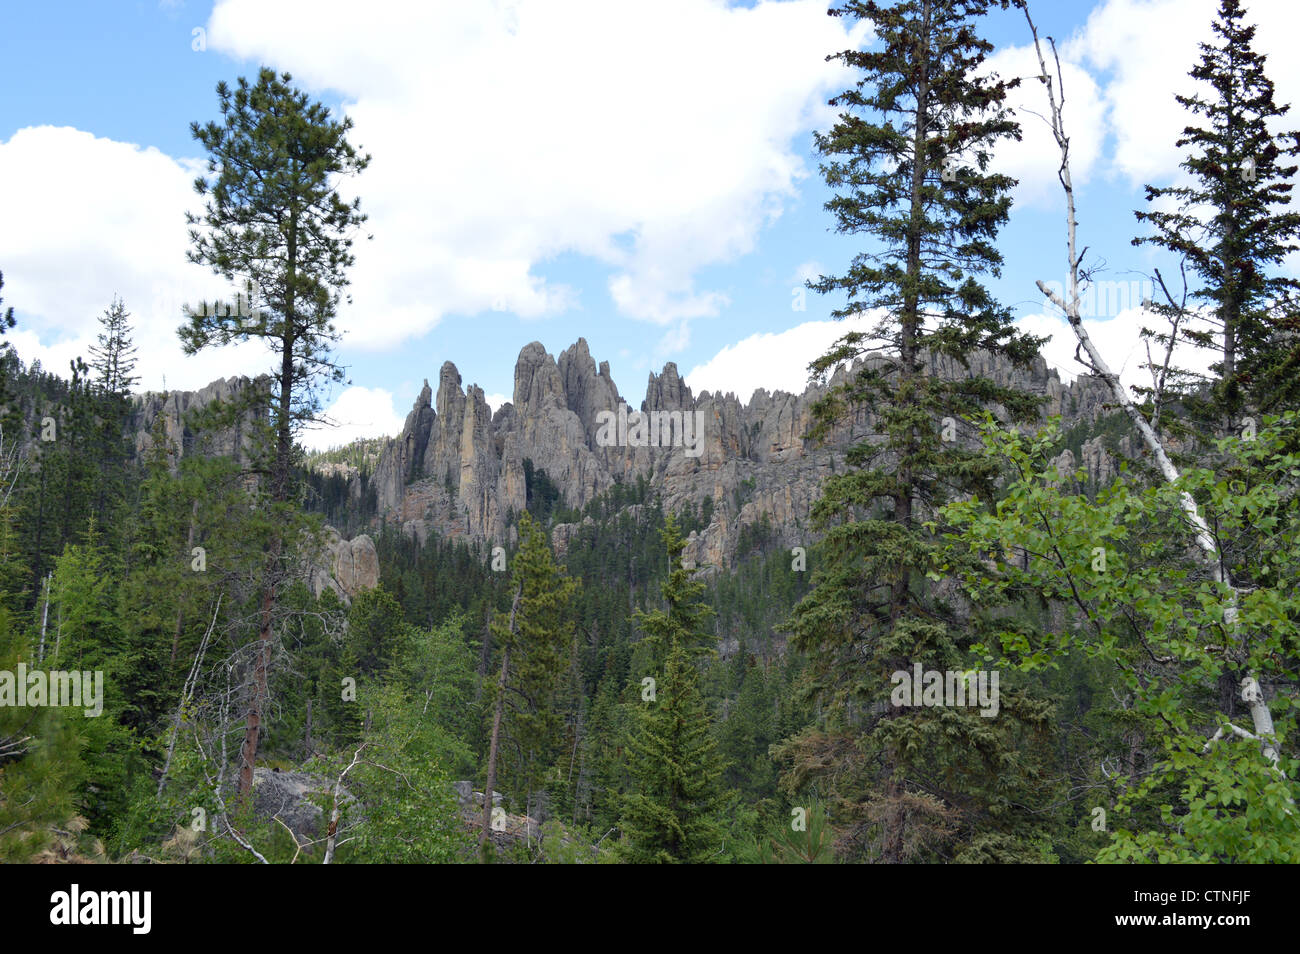 The beautiful scenic highway 85 through the needles area of Custer State Park, South Dakota - Stock Image